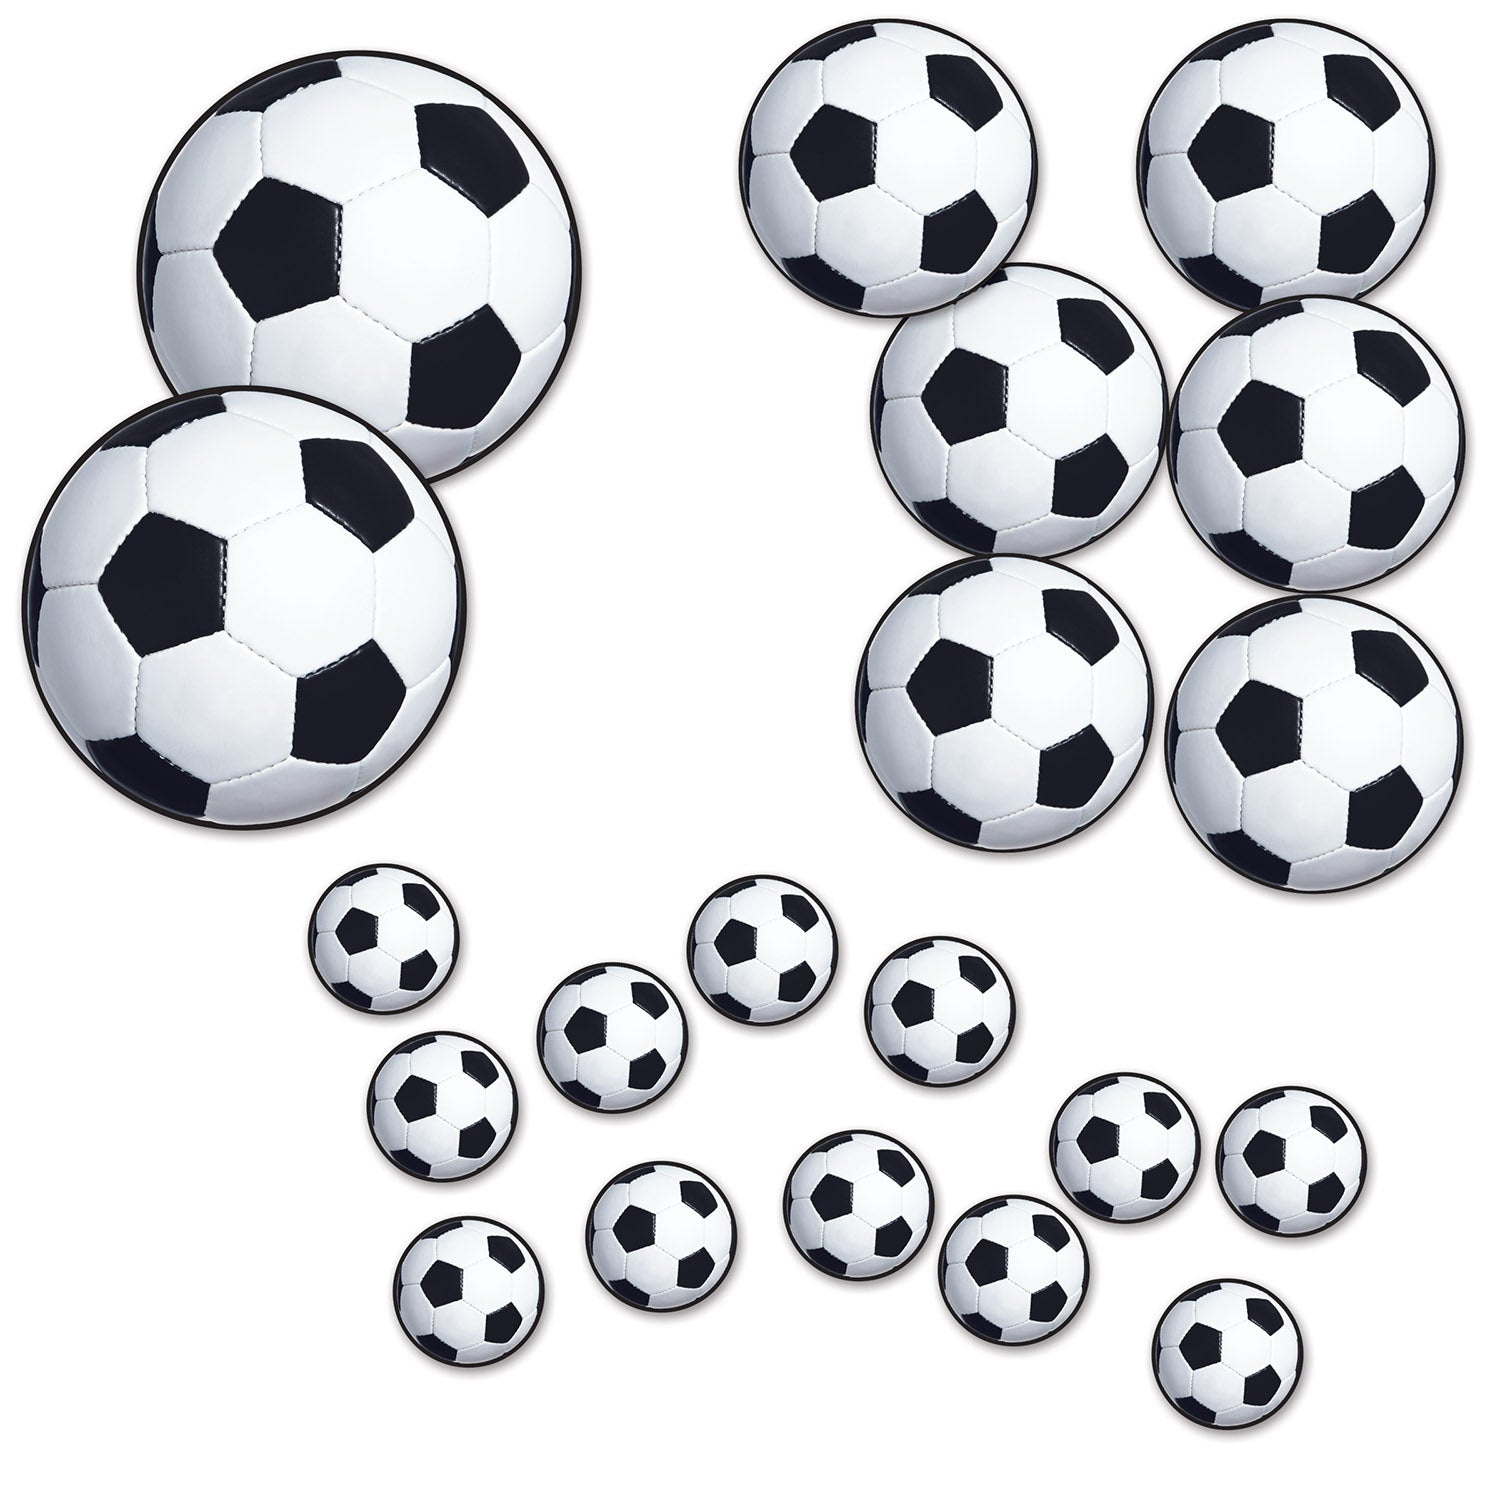 Soccer Ball Cutouts (20/Pkg) by Beistle - Soccer Theme Decorations